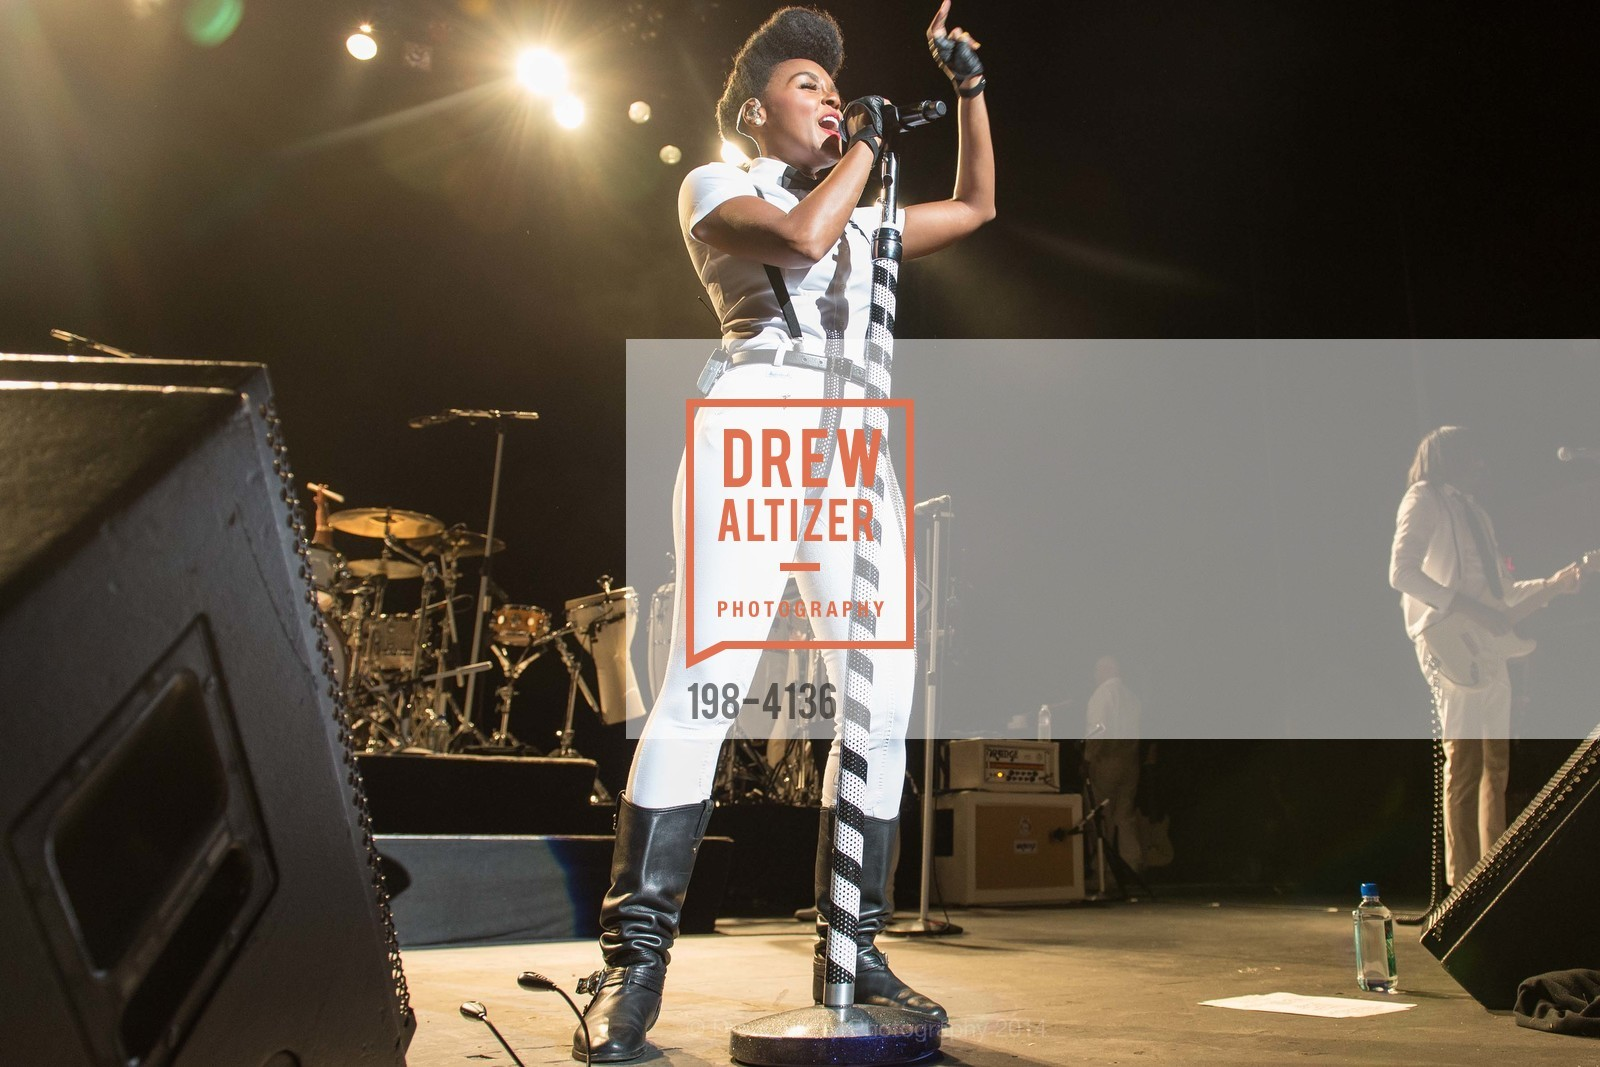 Performance By Janelle Monae, Photo #198-4136